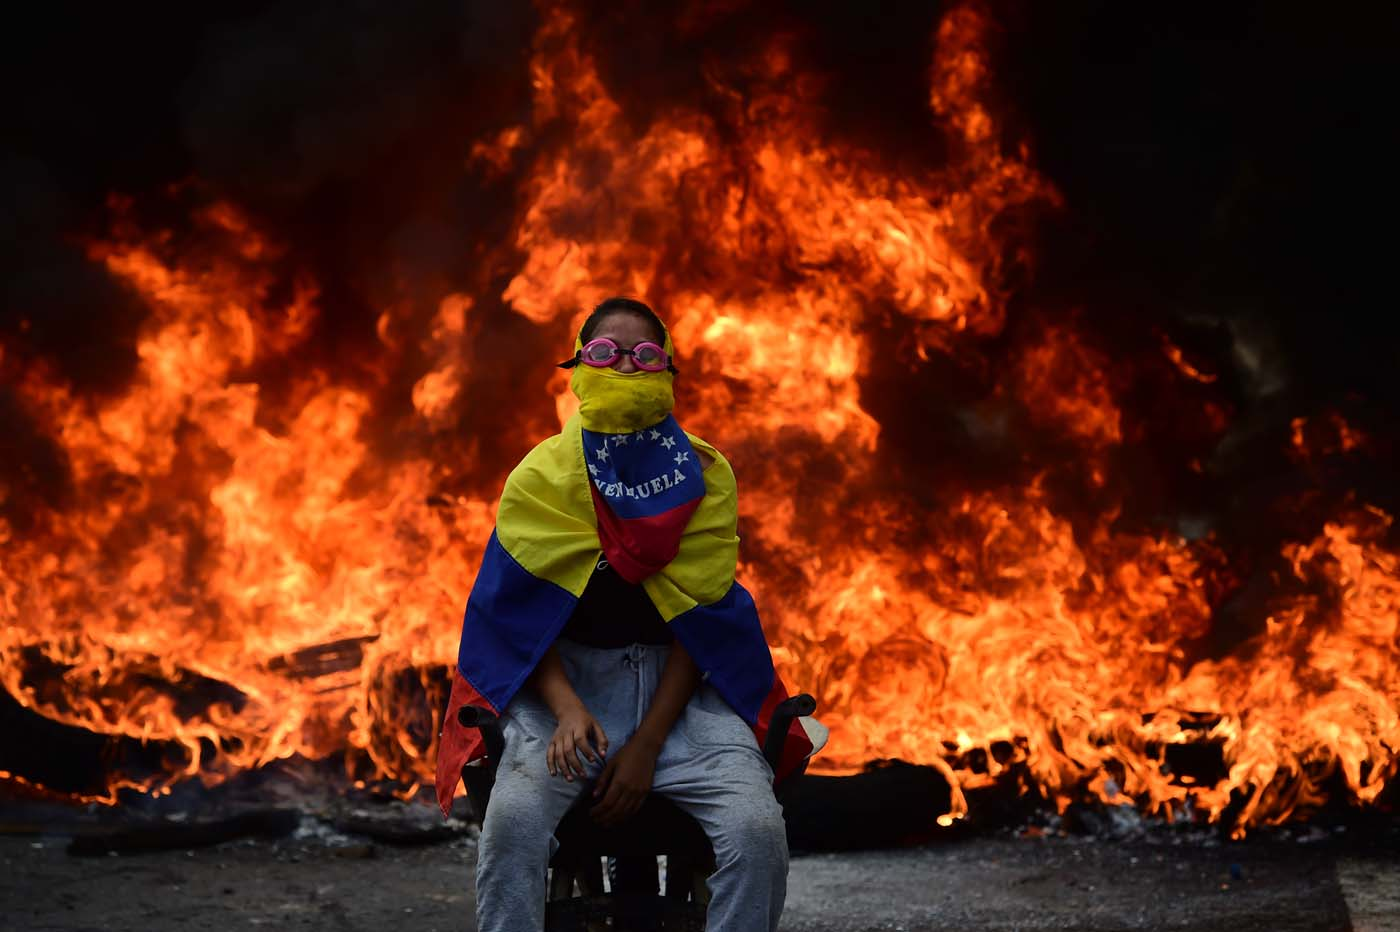 A Venezuelan opposition activist is backdropped by a burning barricade during a demonstration against President Nicolas Maduro in Caracas, on April 24, 2017. Protesters rallied on Monday vowing to block Venezuela's main roads to raise pressure on Maduro after three weeks of deadly unrest that have left 21 people dead. Riot police fired rubber bullets and tear gas to break up one of the first rallies in eastern Caracas early Monday while other groups were gathering elsewhere, the opposition said.  / AFP PHOTO / Ronaldo SCHEMIDT